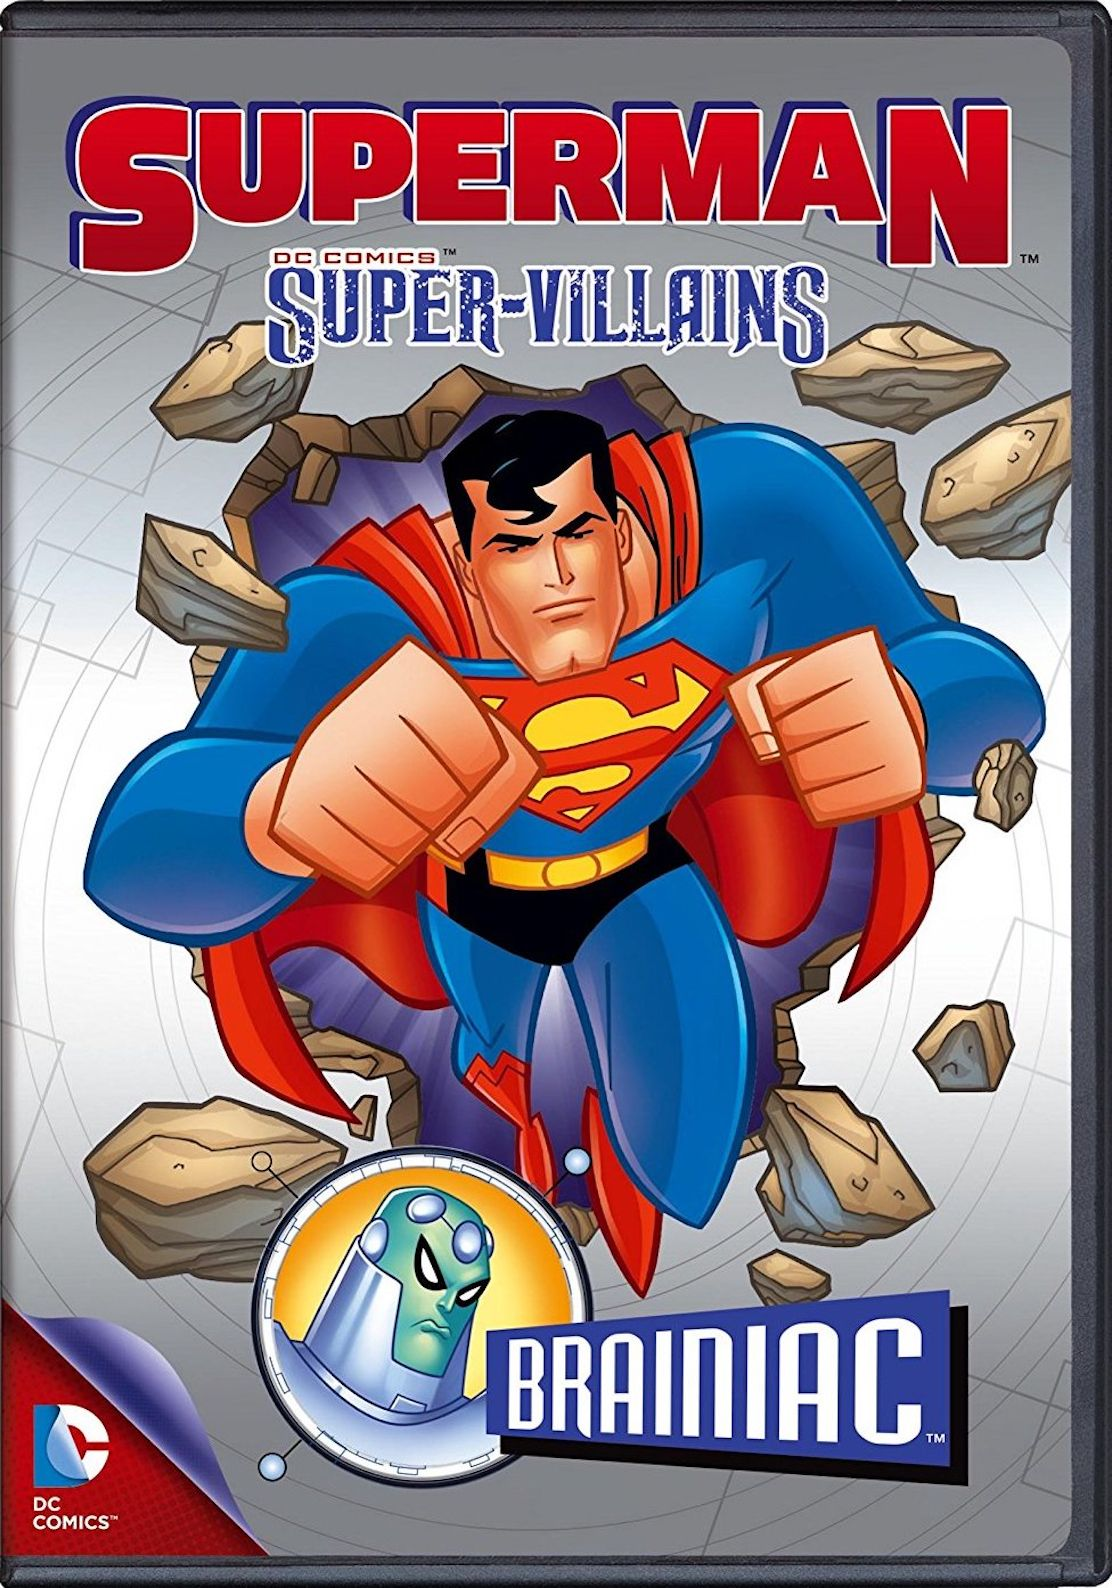 SUPERMAN SUPERVILLAINS BRAINIAC DVD Super villains